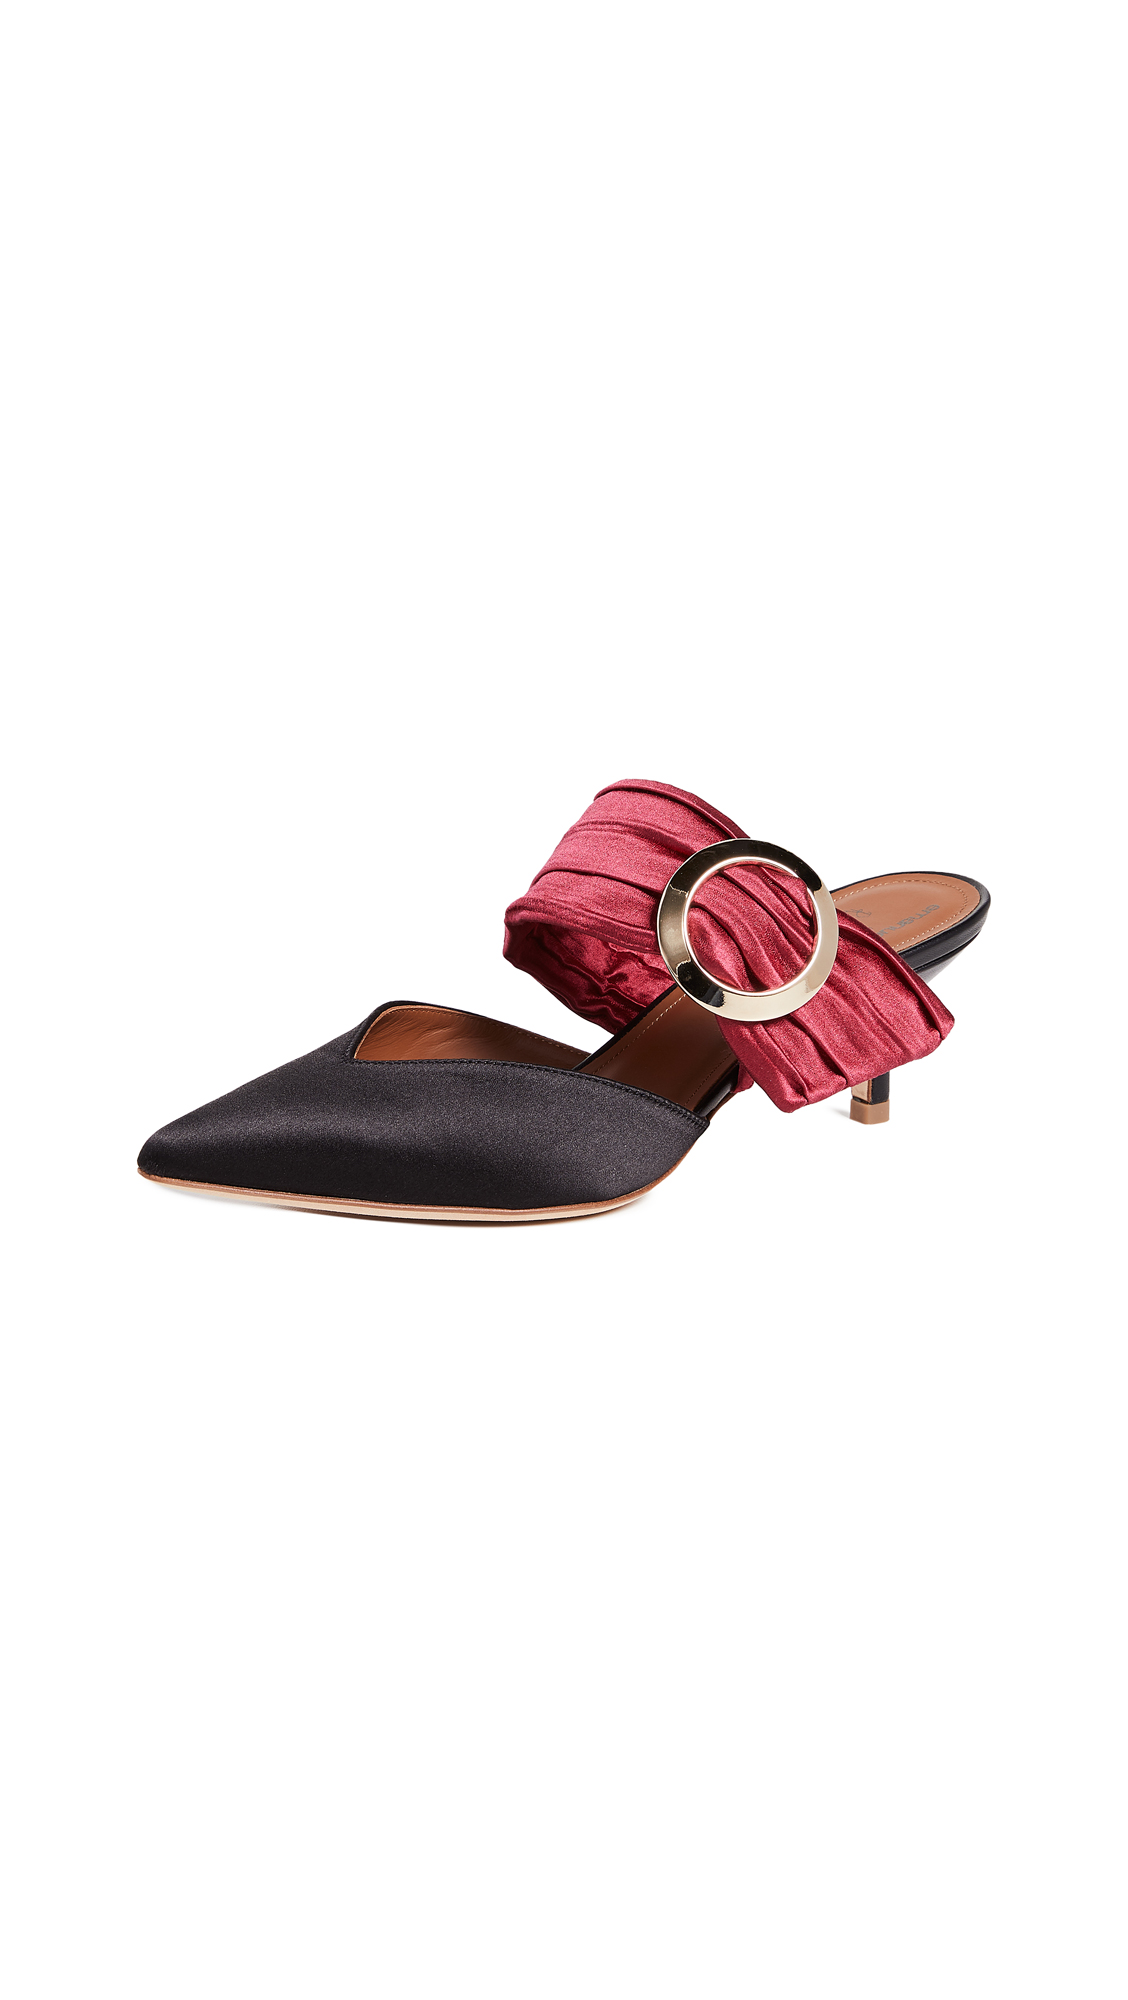 Malone Souliers Maite Ungaro Mules - Red/Black